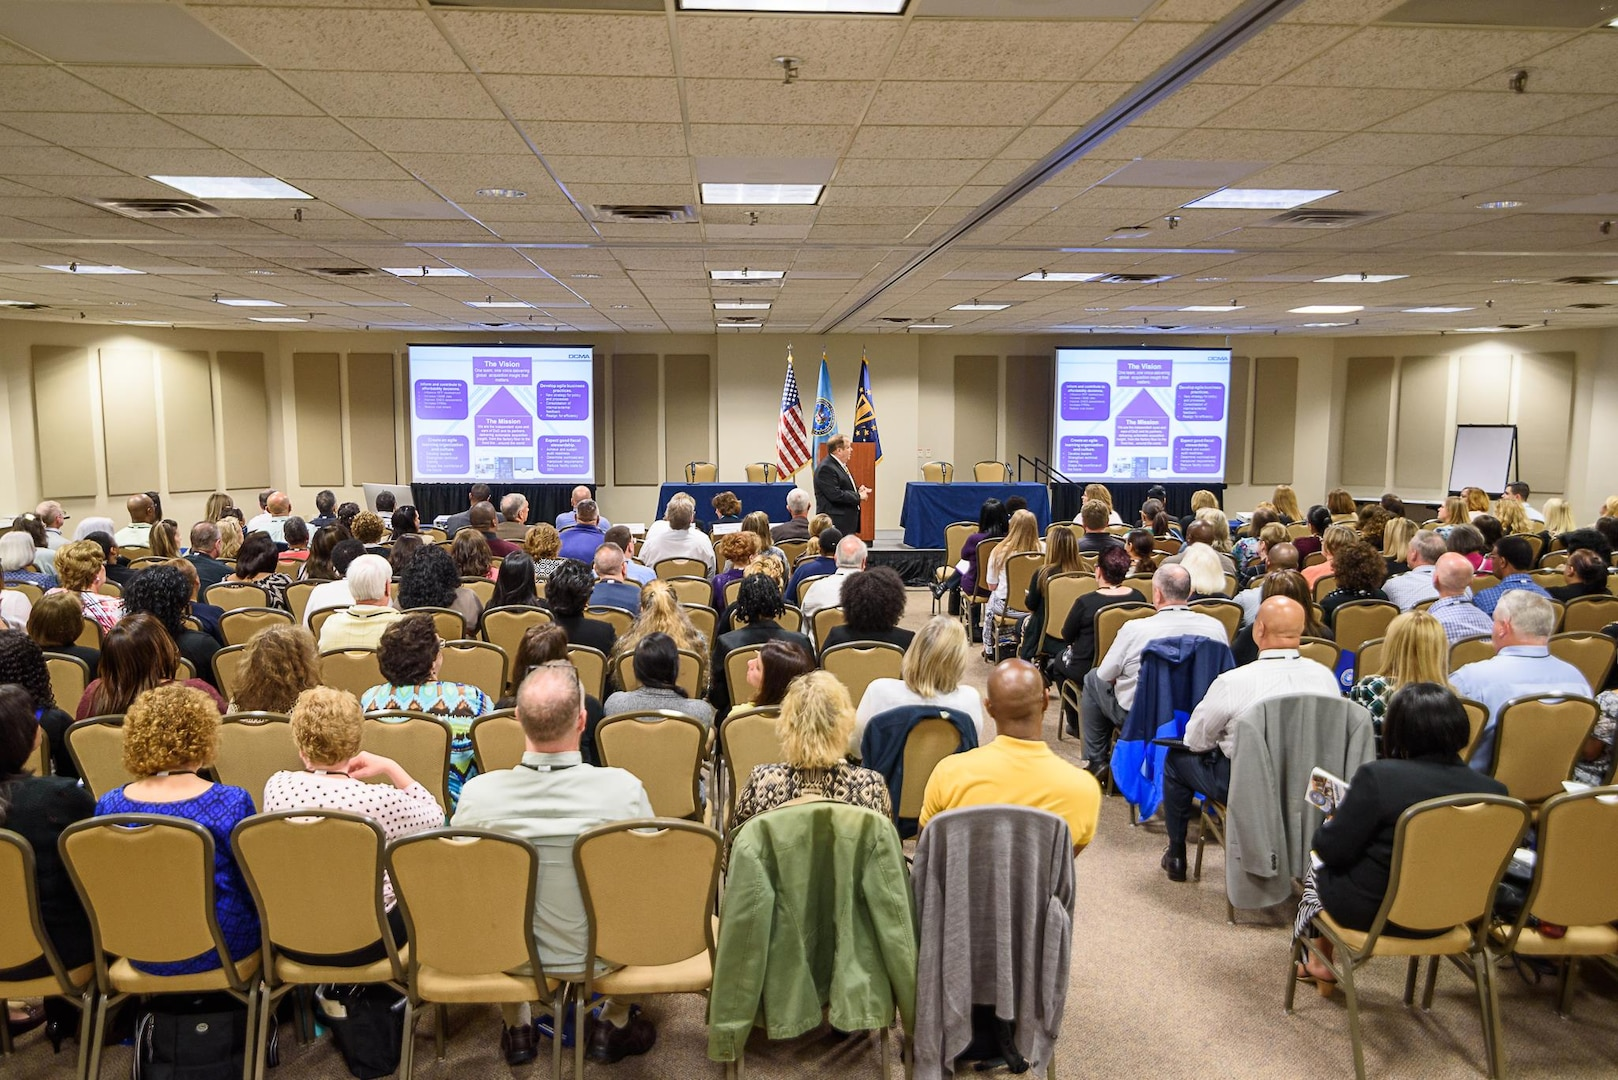 About 200 professionals from the Defense Contract Management Agency gathered in Northern Virginia recently for a three-day training workshop that discussed a variety of mission support topics. (DCMA photo by Patrick Tremblay)